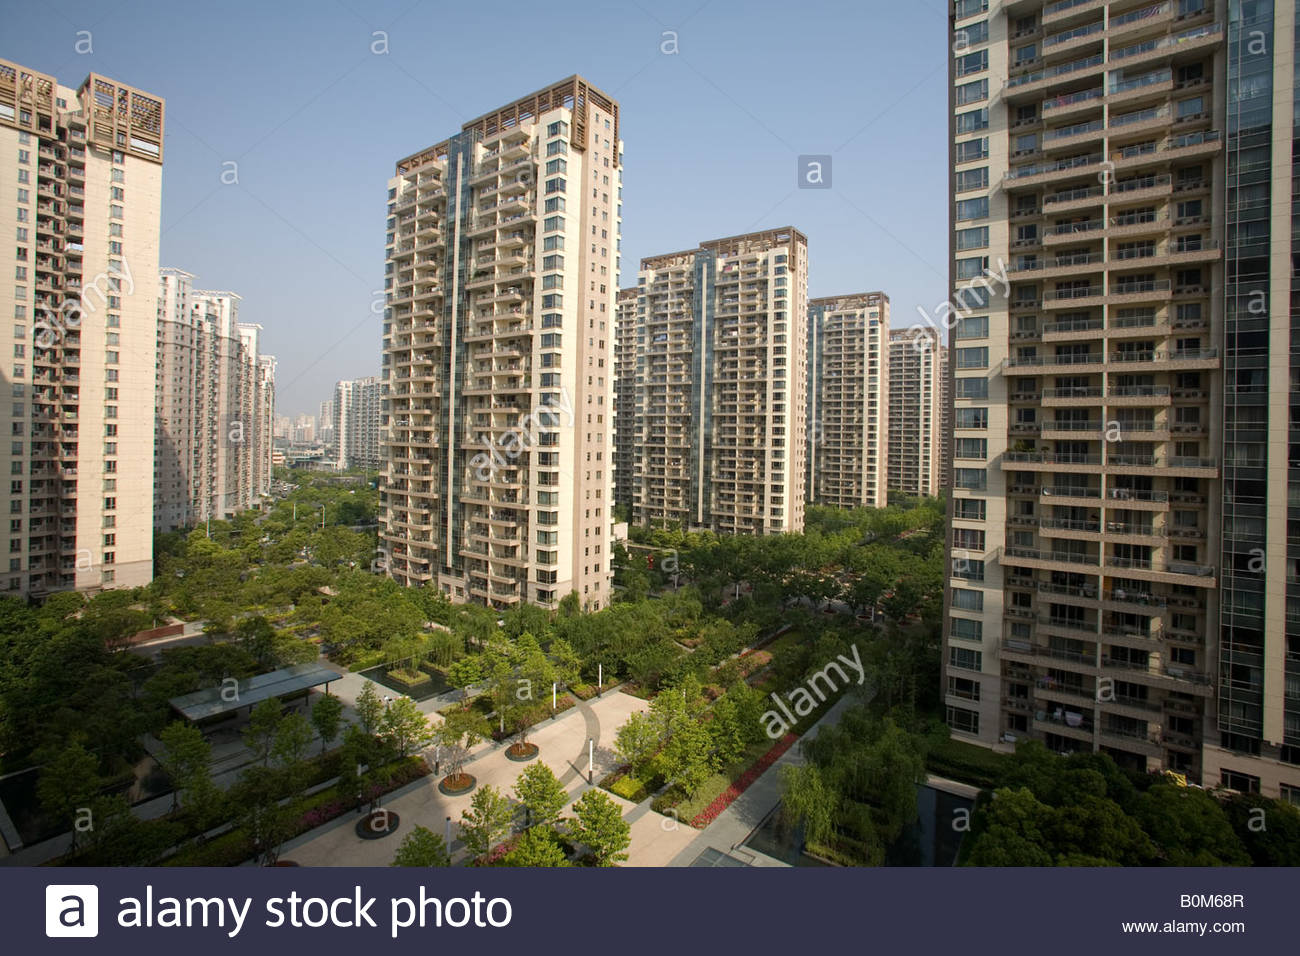 Stock Photo High Rise Apartment Buildings In Pudong Area Of Shanghai China 17654359 on New York City Luxury Apartments